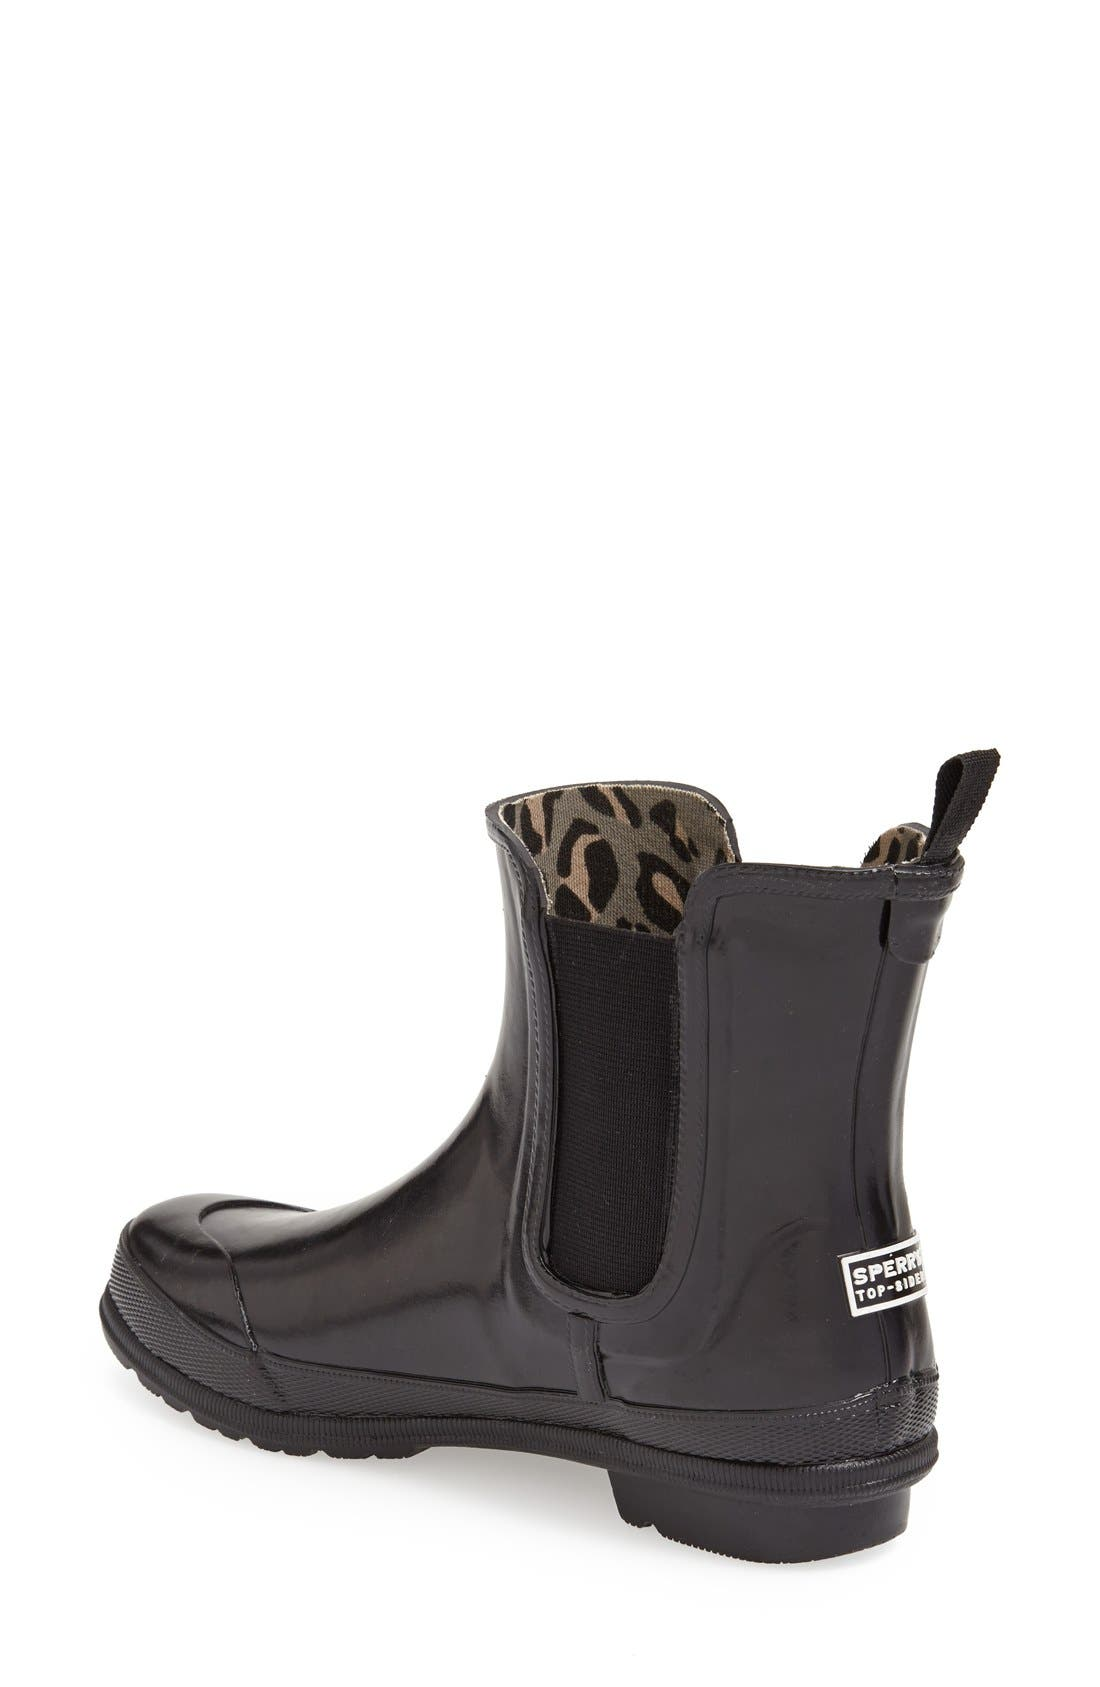 Top-Sider<sup>®</sup> 'Starling' Rubber Rain Boot,                             Alternate thumbnail 2, color,                             001